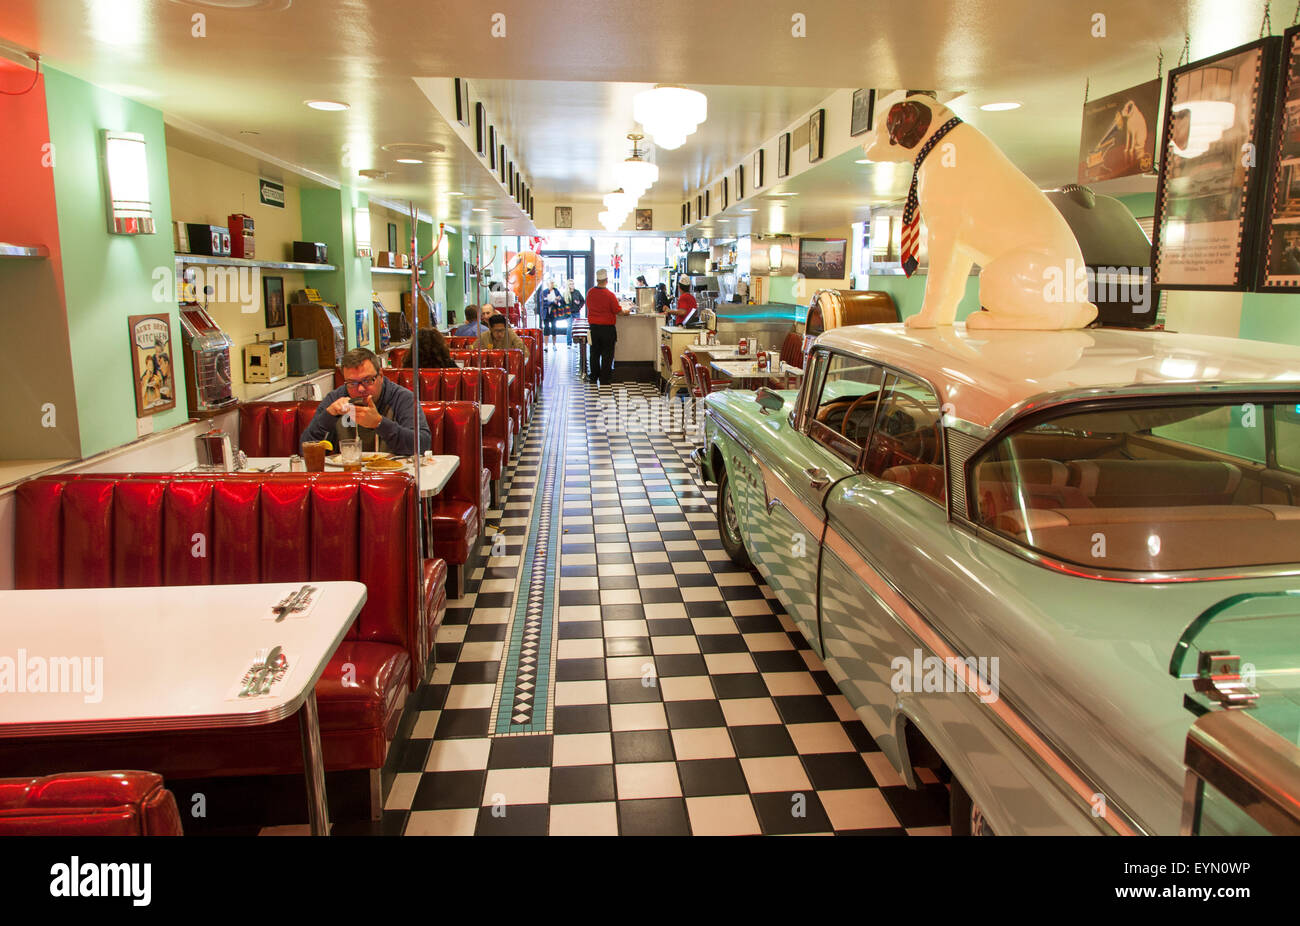 Inside lori 39 s dinner a popular 50 39 s style restaurant in for 50s diner style kitchen